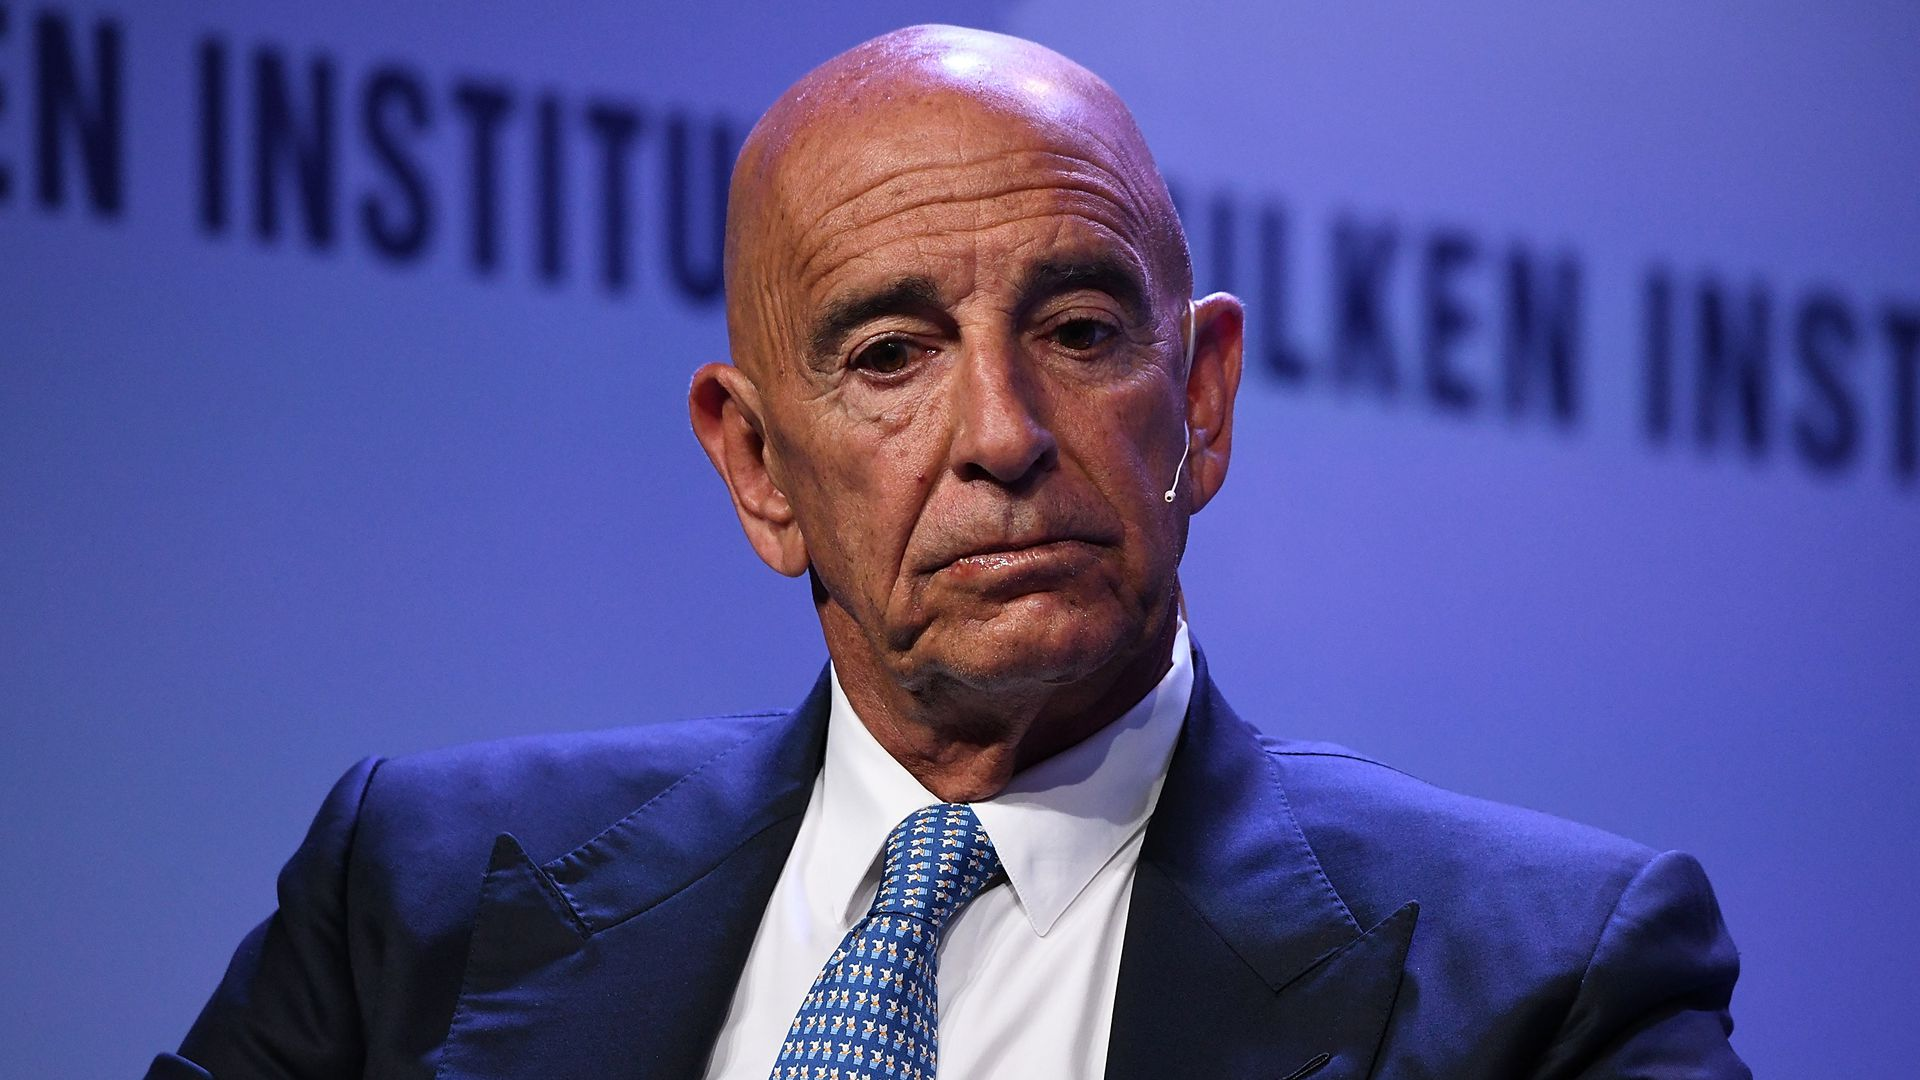 Thomas Barrack, Executive Chairman and CEO, Colony Capital, participates in a panel discussion during the annual Milken Institute Global Conference